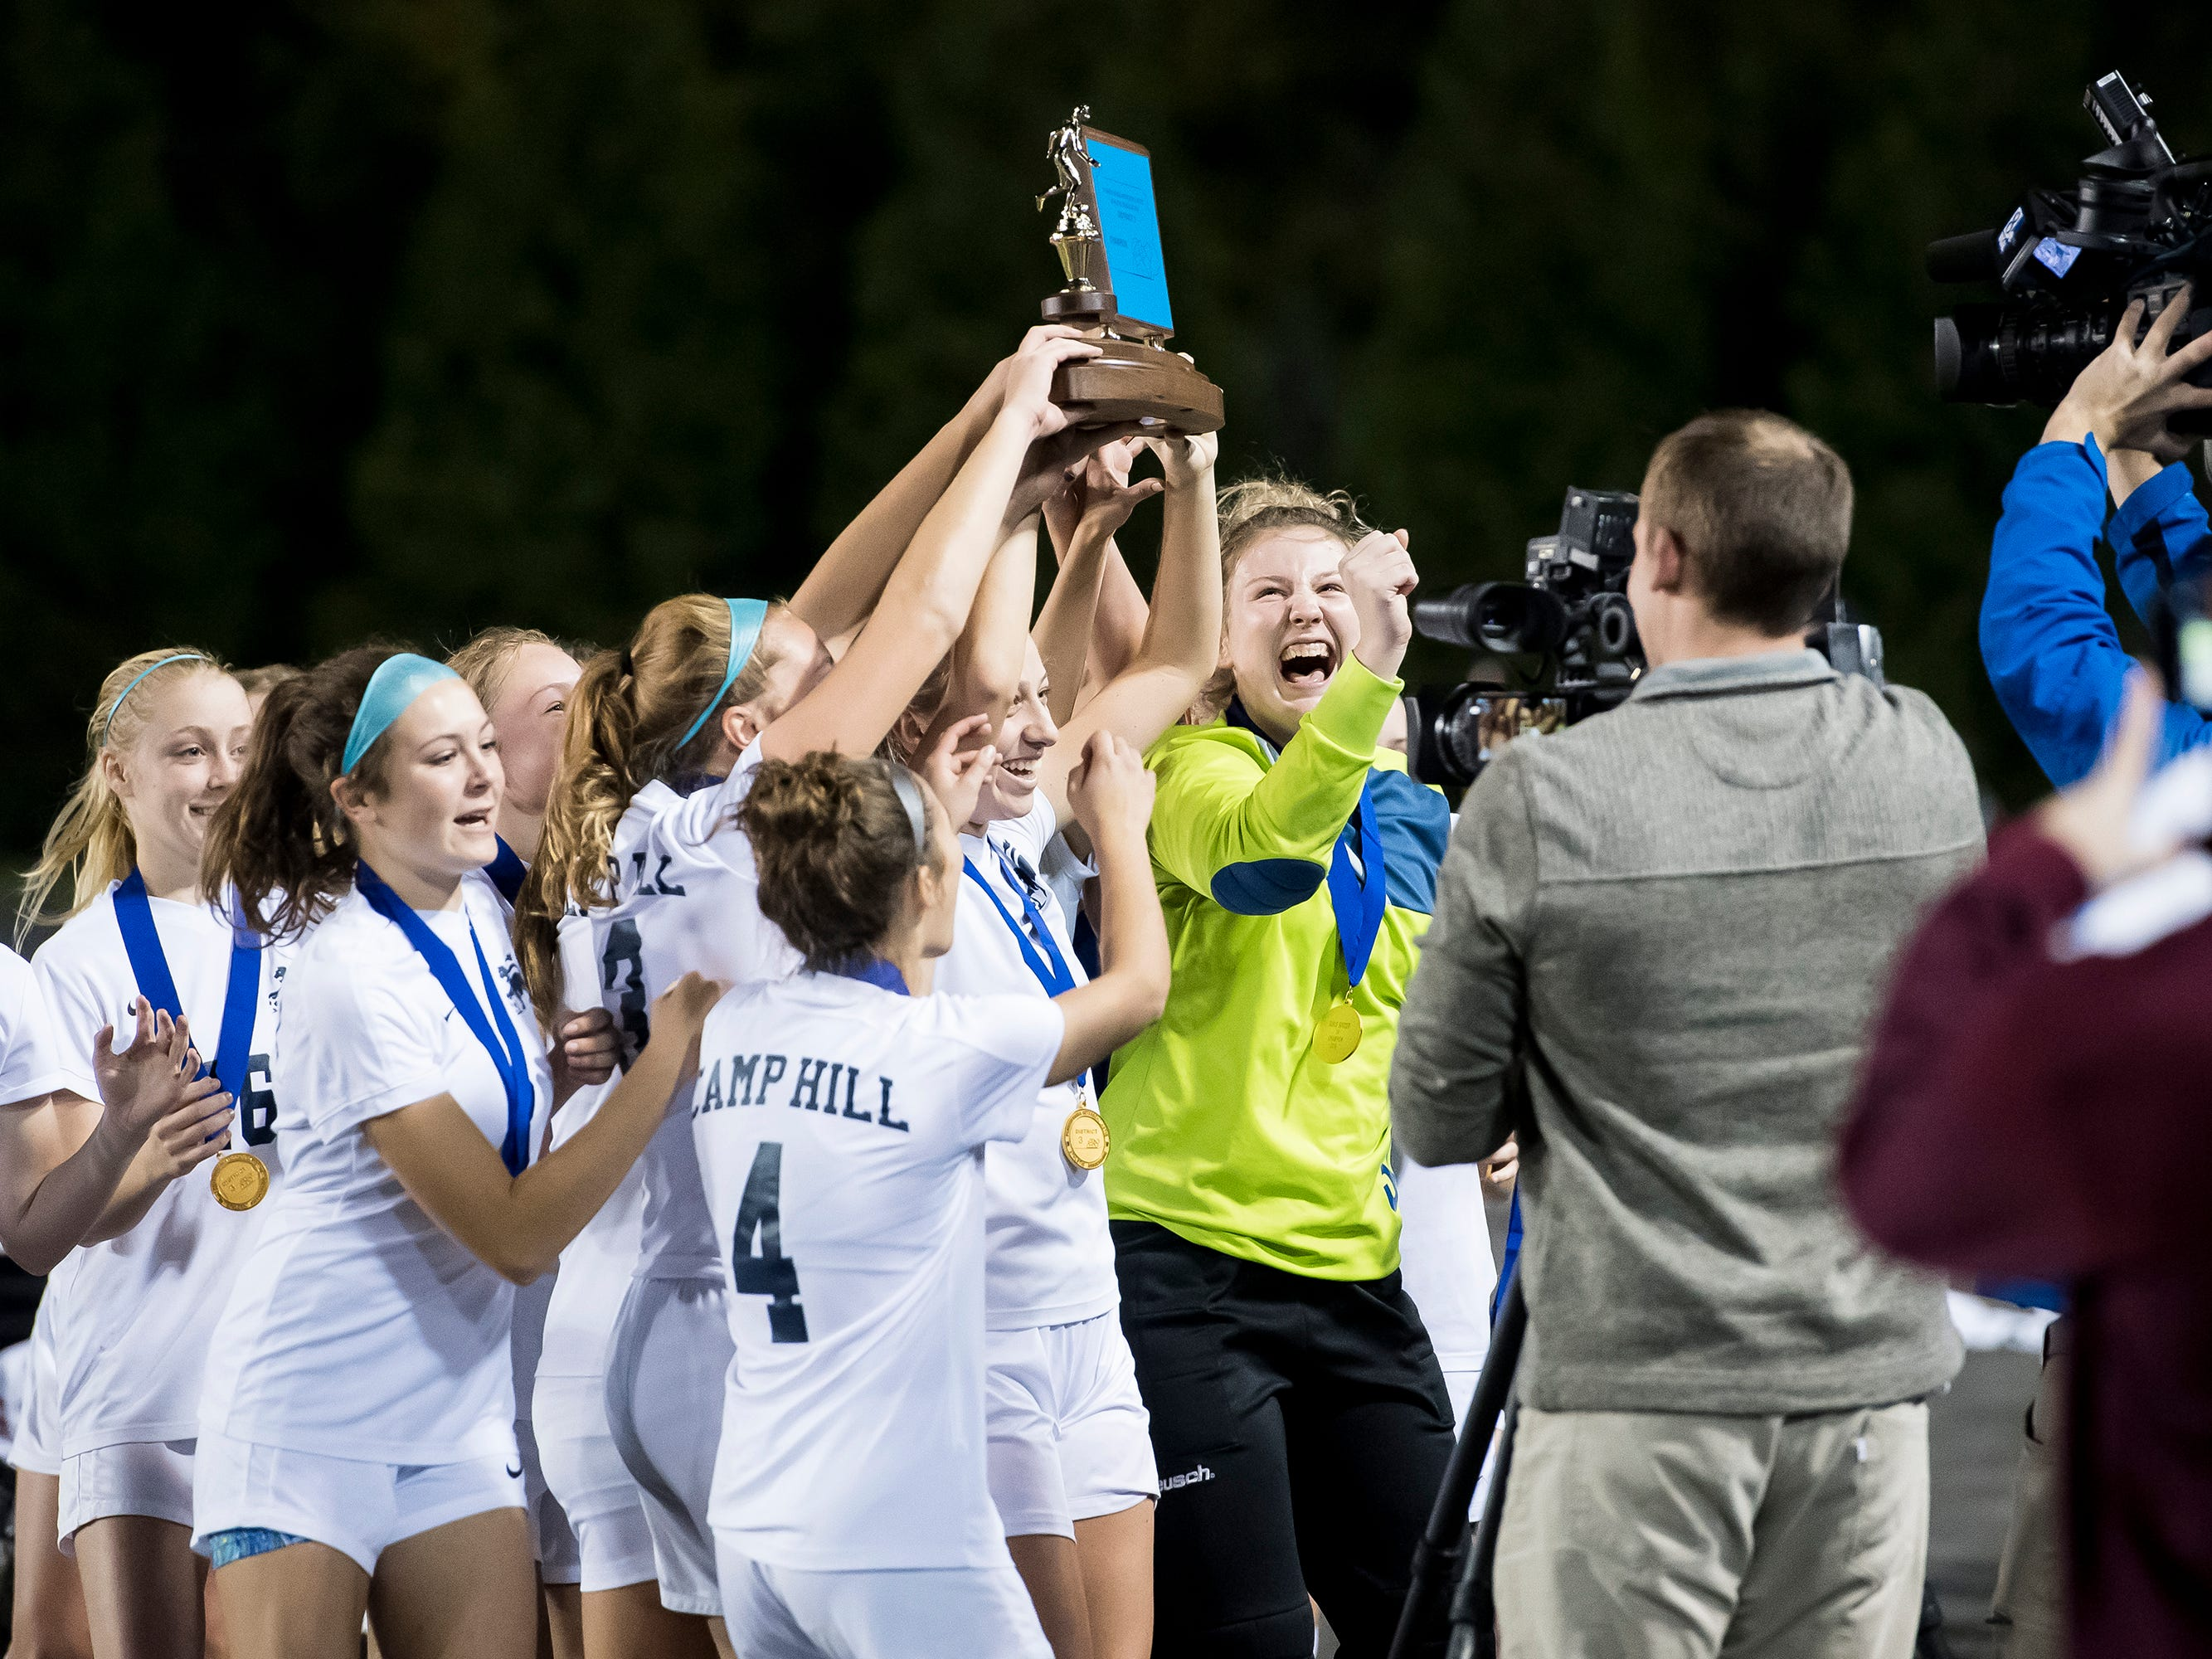 The Camp Hill Lions celebrate their PIAA District III Class A championship after defeating Fairfield 1-0 in overtime at Hershey Park Stadium on Wednesday, October 31, 2018.